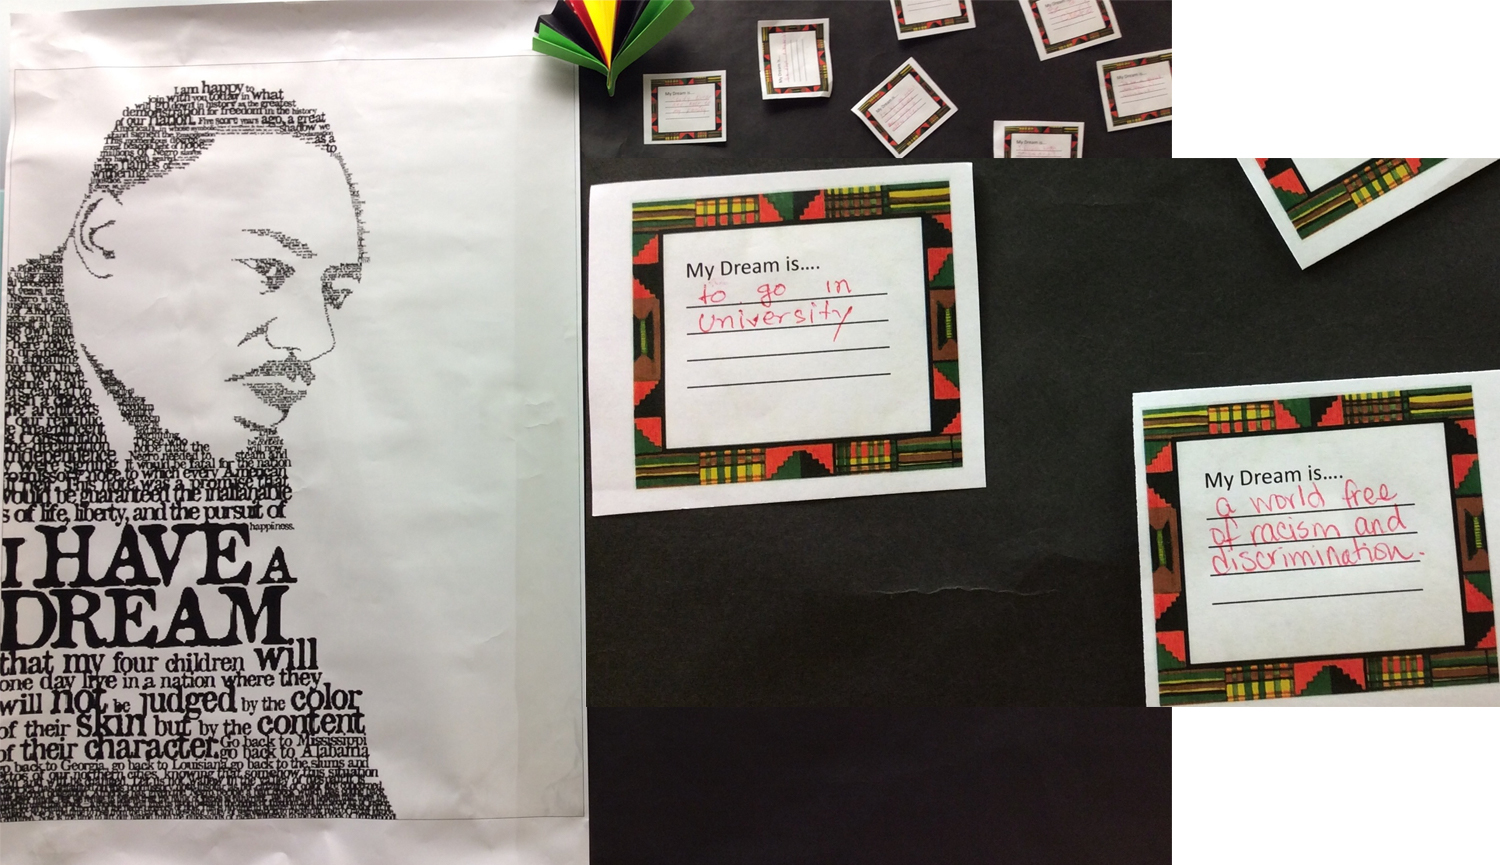 Students Share Their Dreams for Black History Month